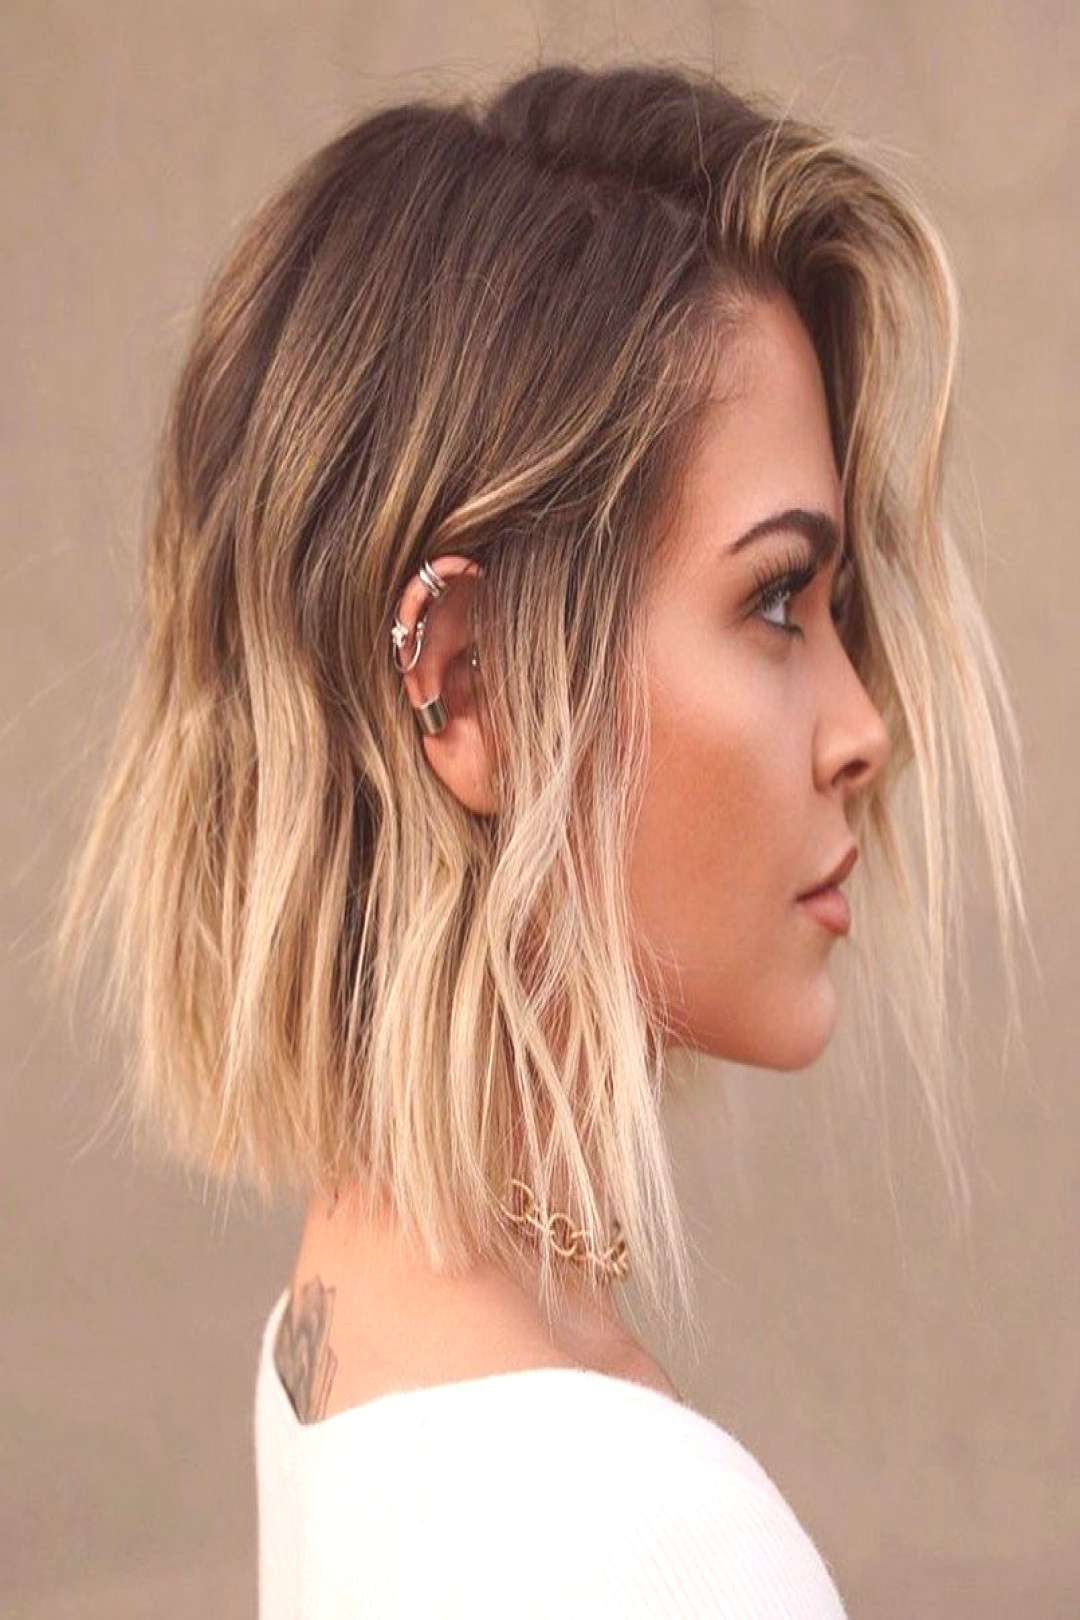 Top 30 Short Haircut Trends for 2020 - Quick amp Easy Short Hairstyles - -